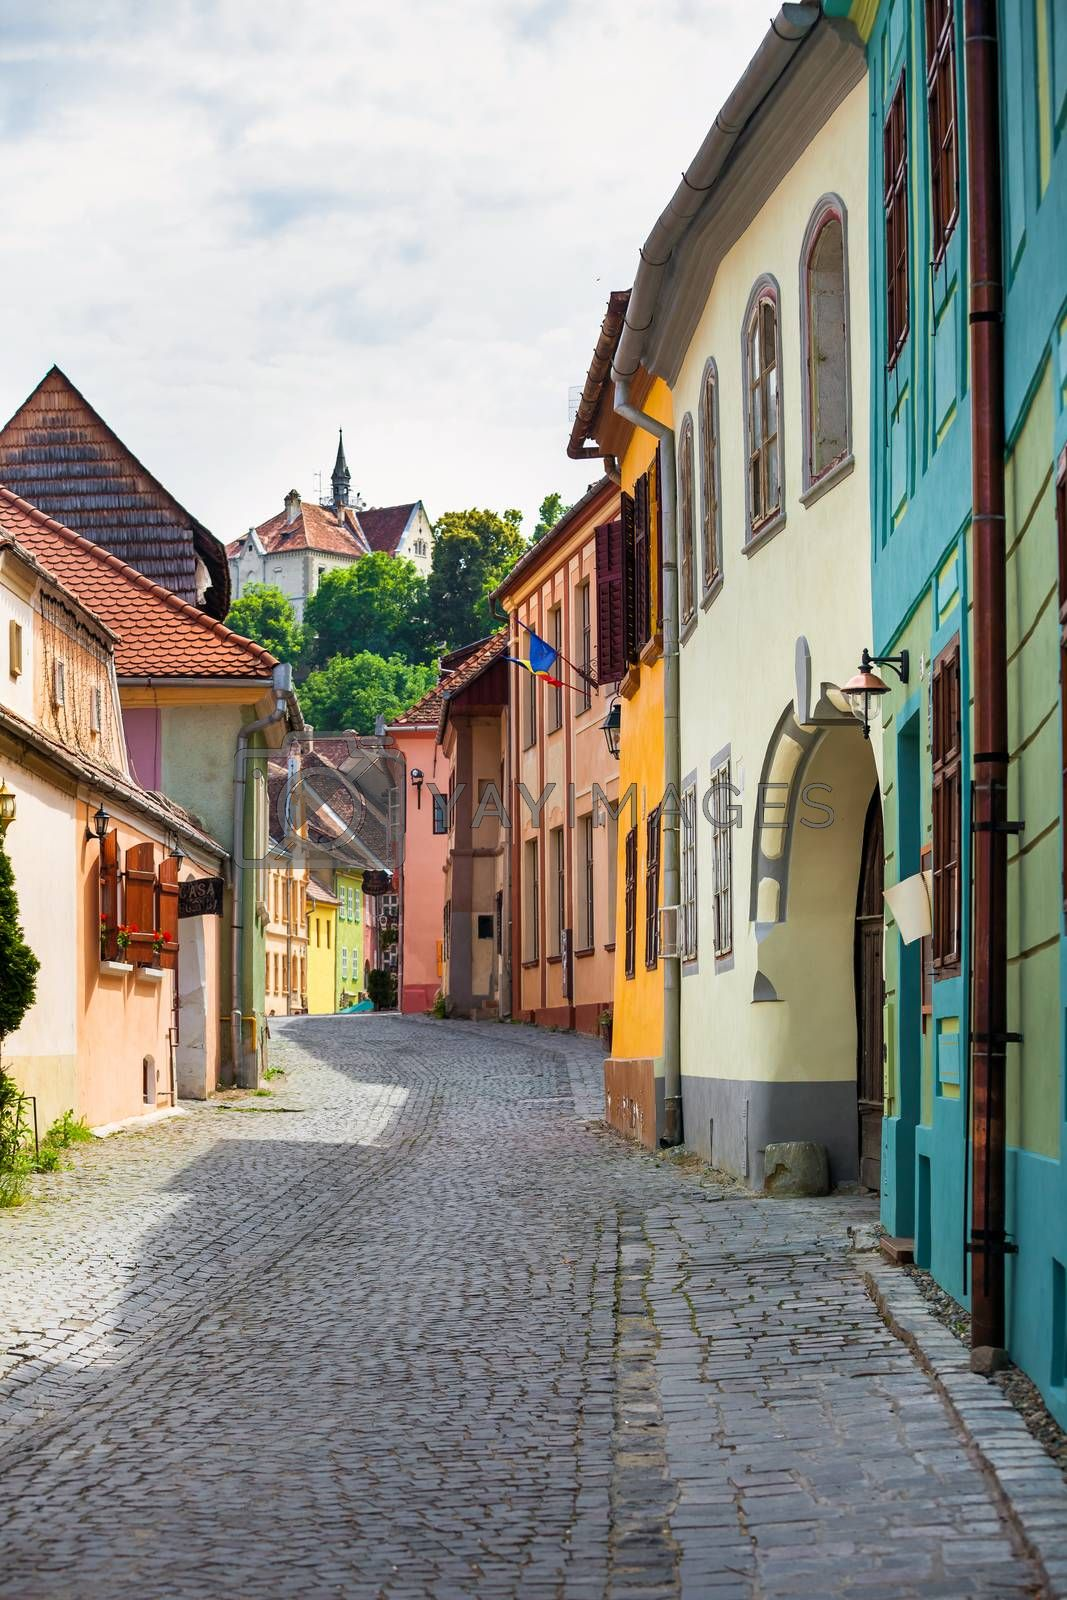 Sighisoara, Romania - June 23, 2013: Stone paved old street with colored houses from Sighisoara fortresss, Transylvania, Romania